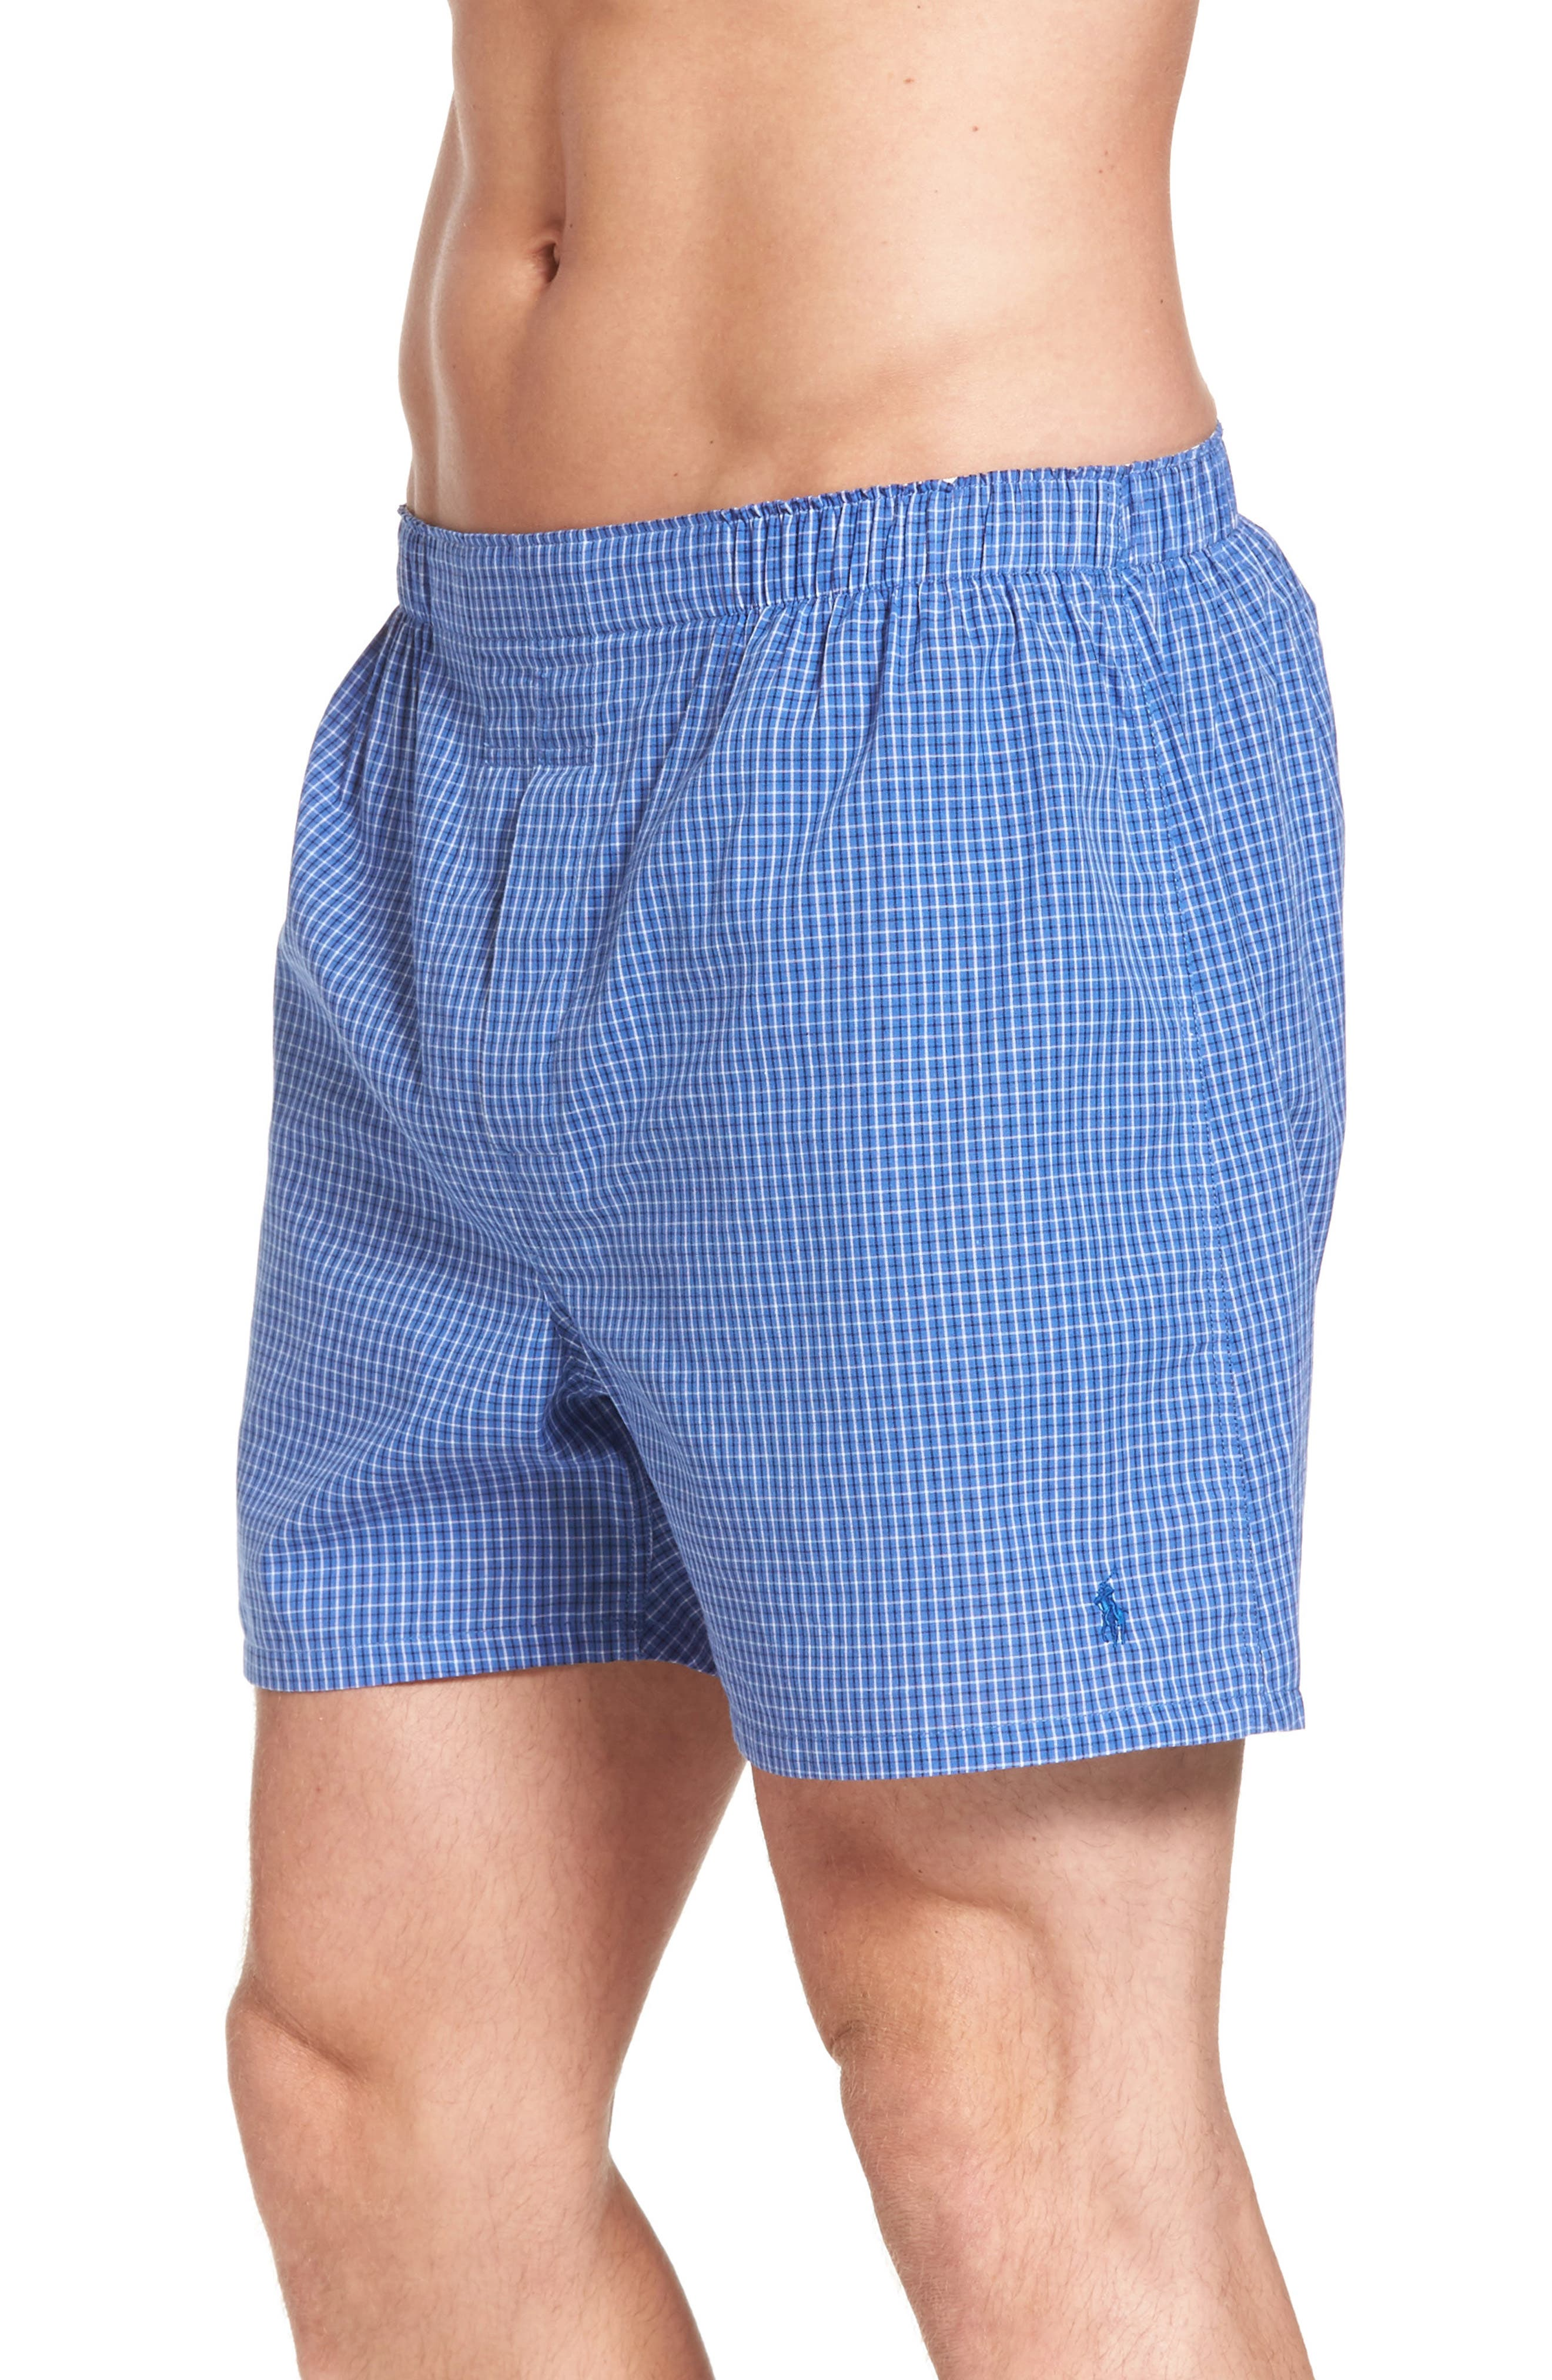 Assorted 3-Pack Woven Cotton Boxers,                             Alternate thumbnail 23, color,